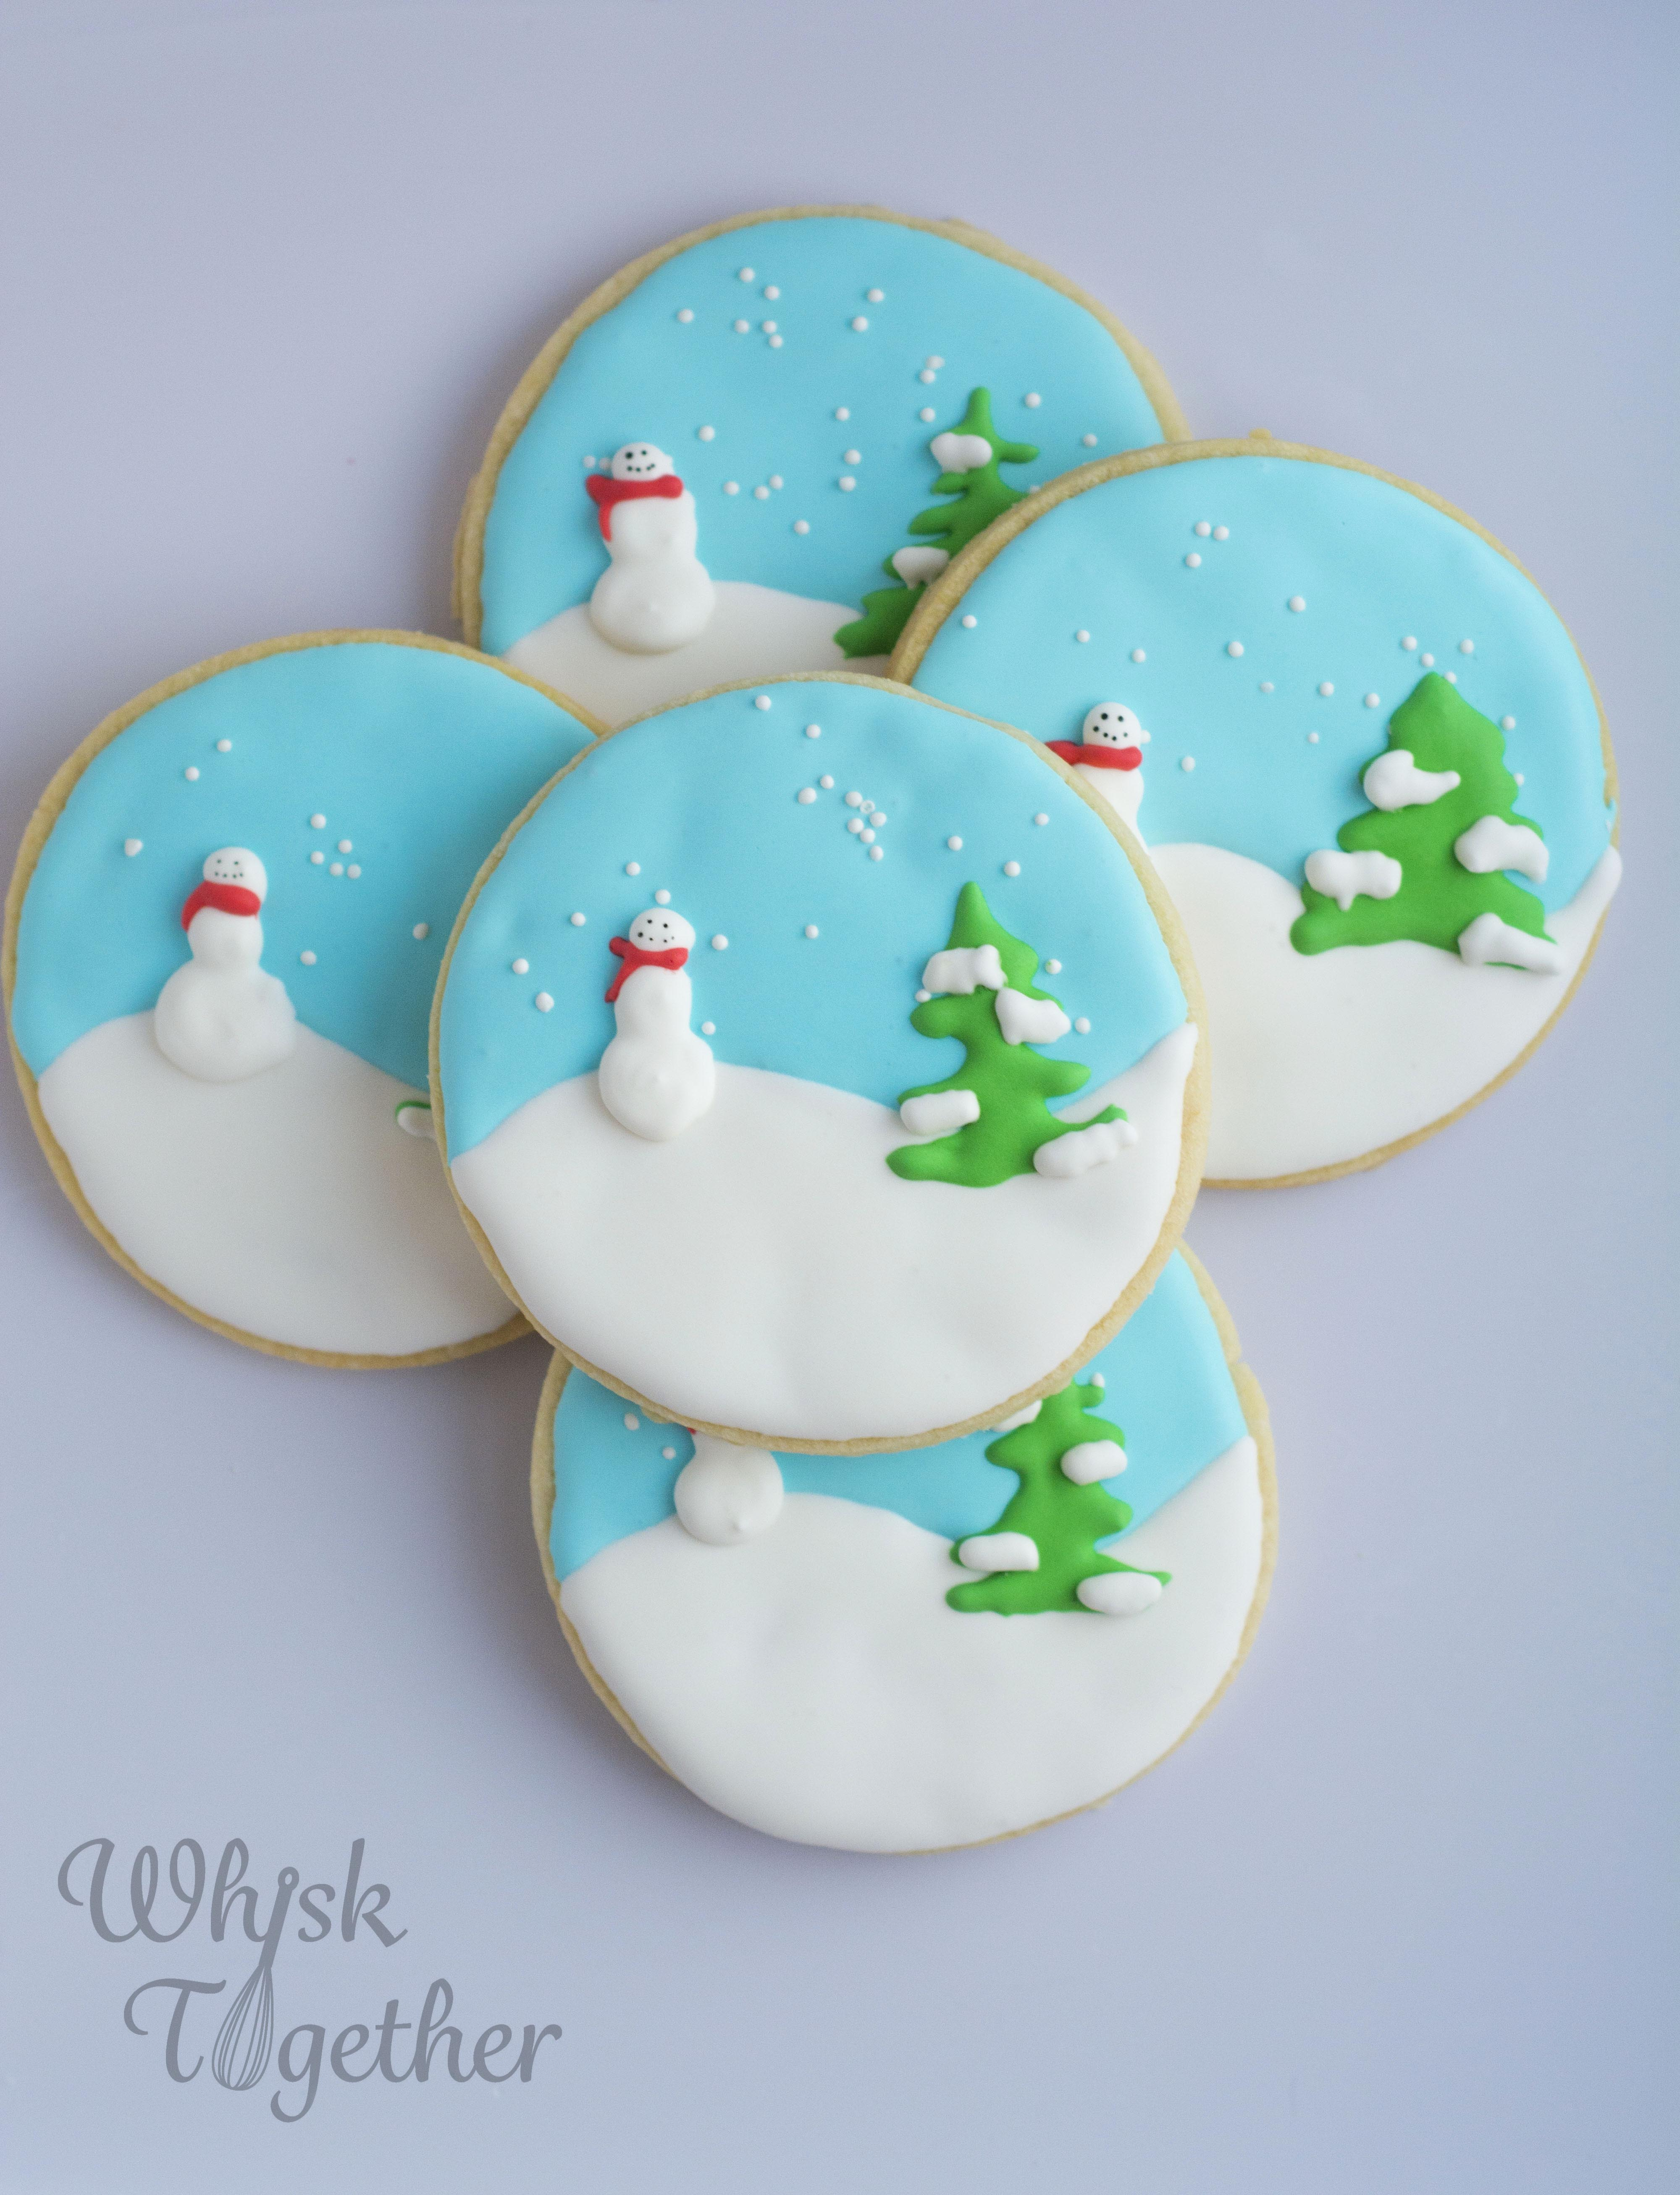 Snowglobe And Gingerbread Christmas Cookies